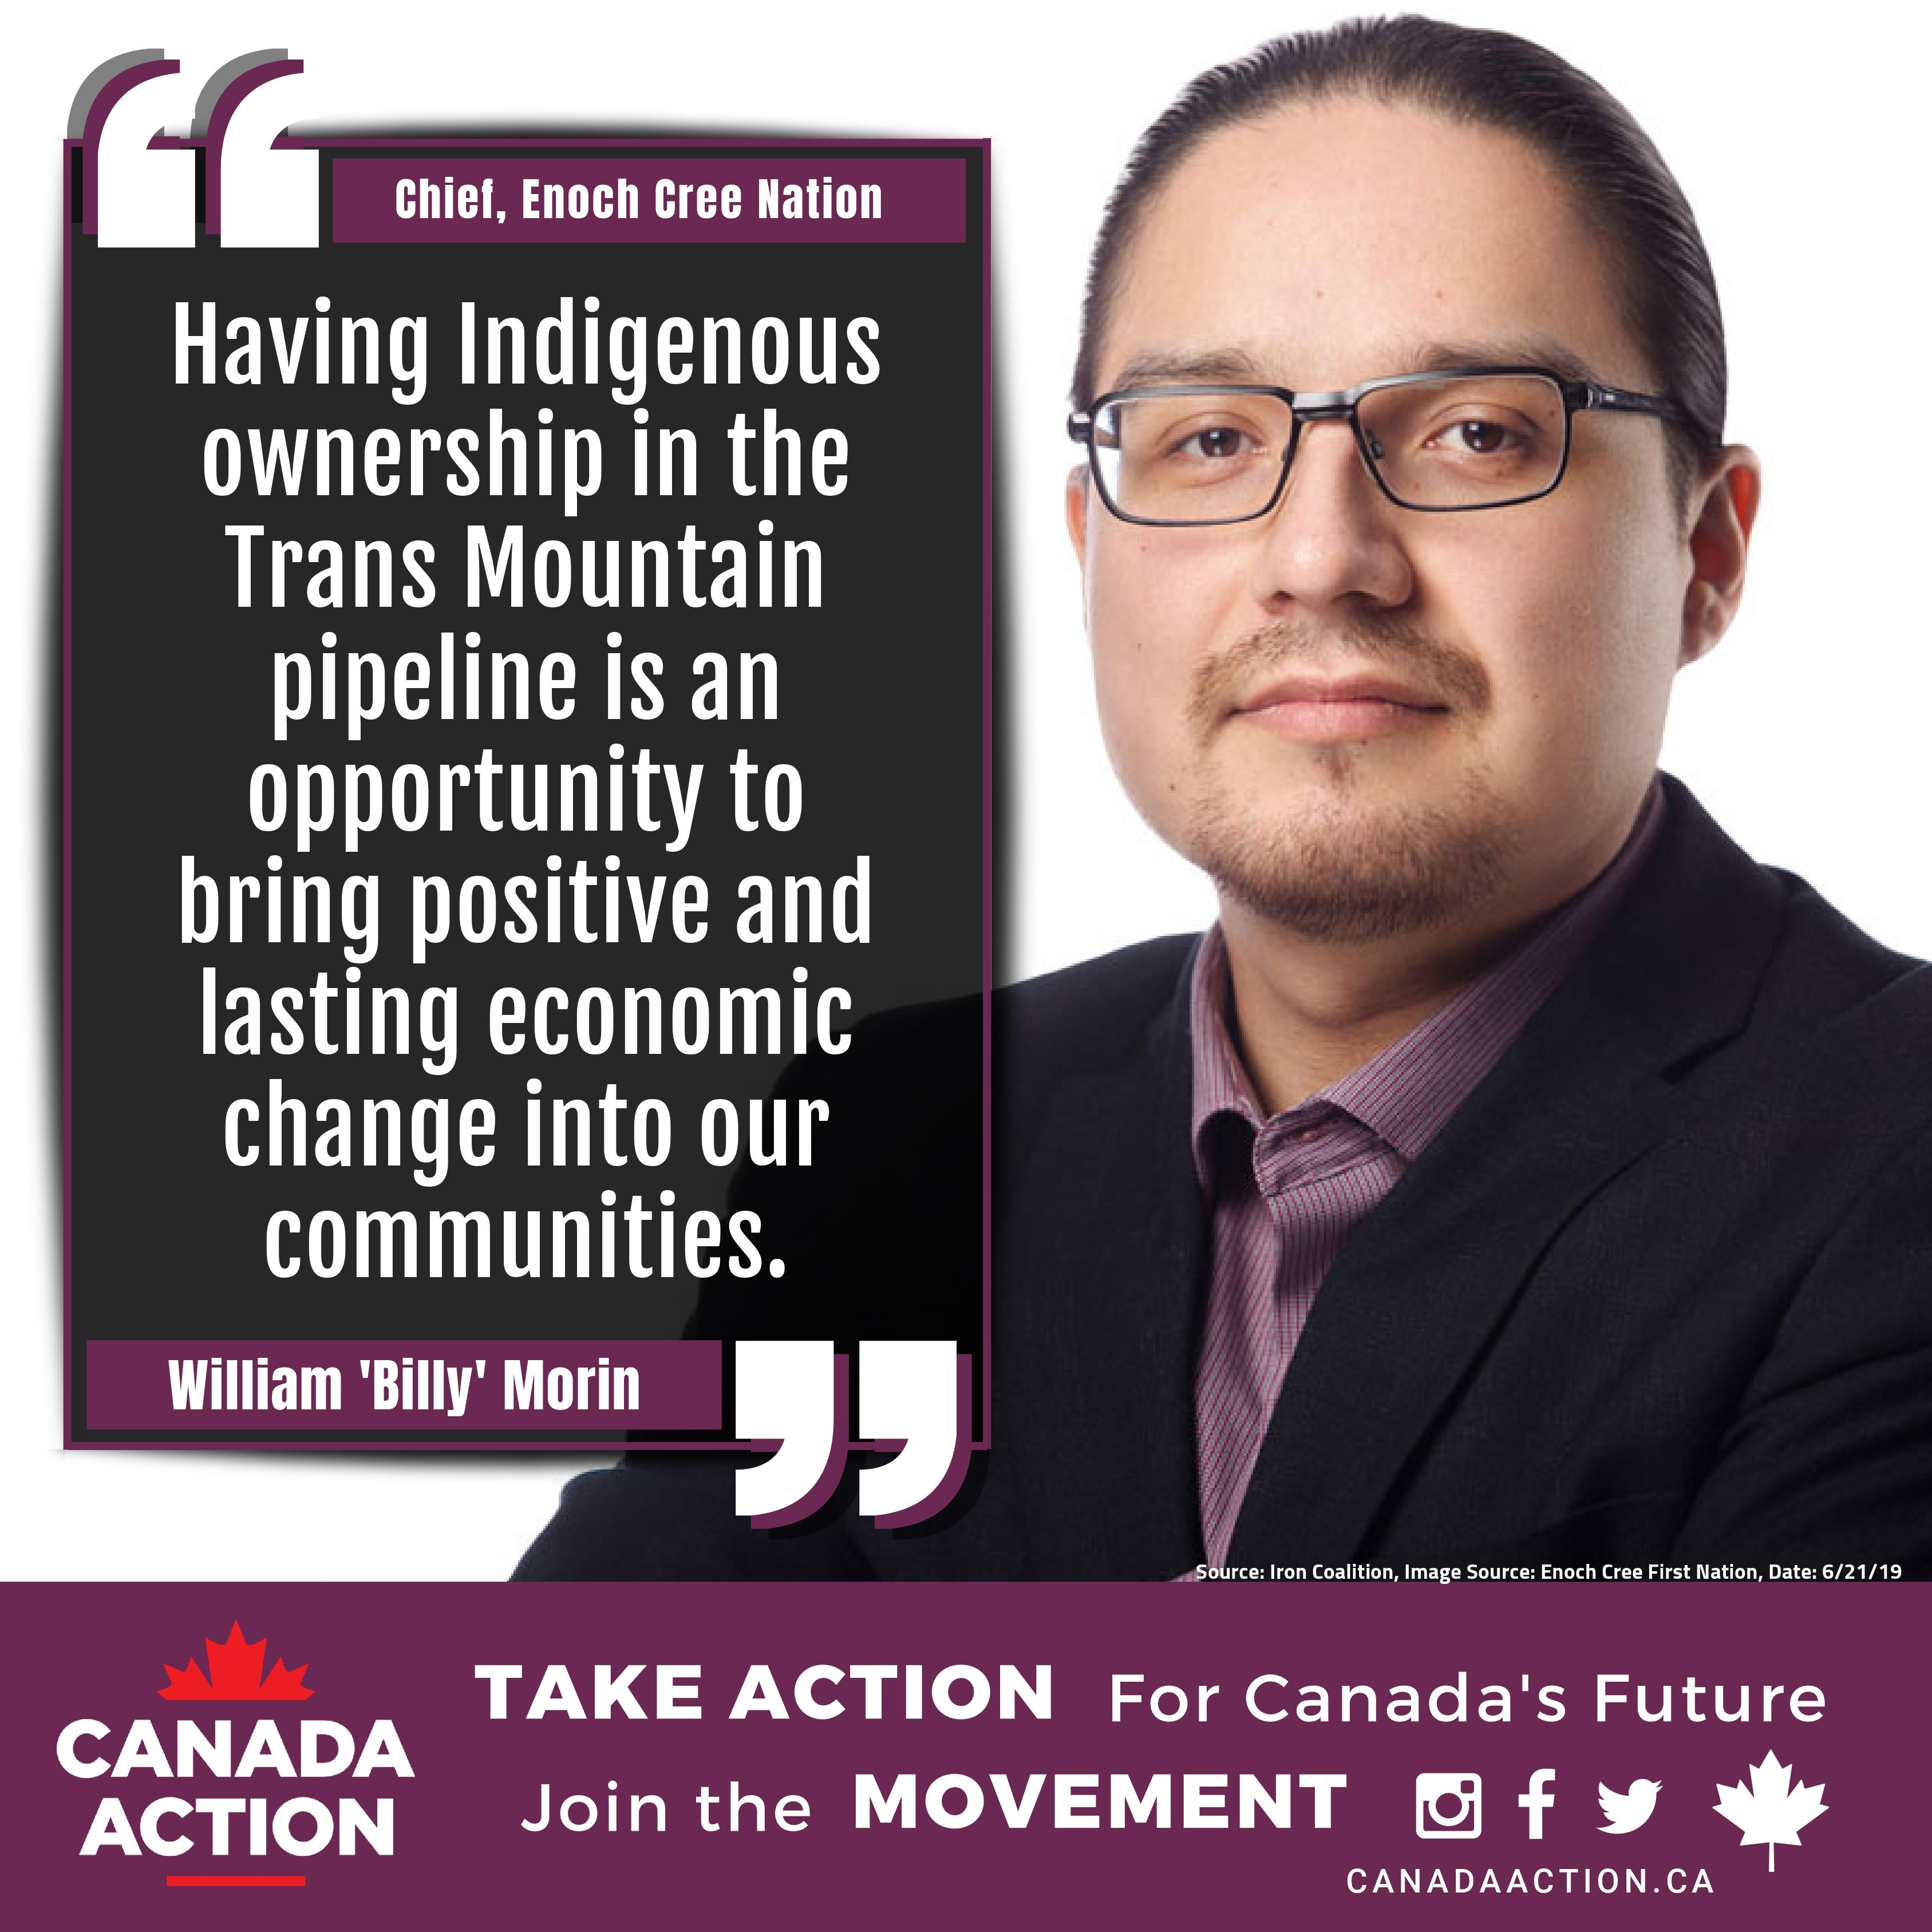 Chief William Morin, Enoch Cree Nation, Supports Trans Mountain Expansion